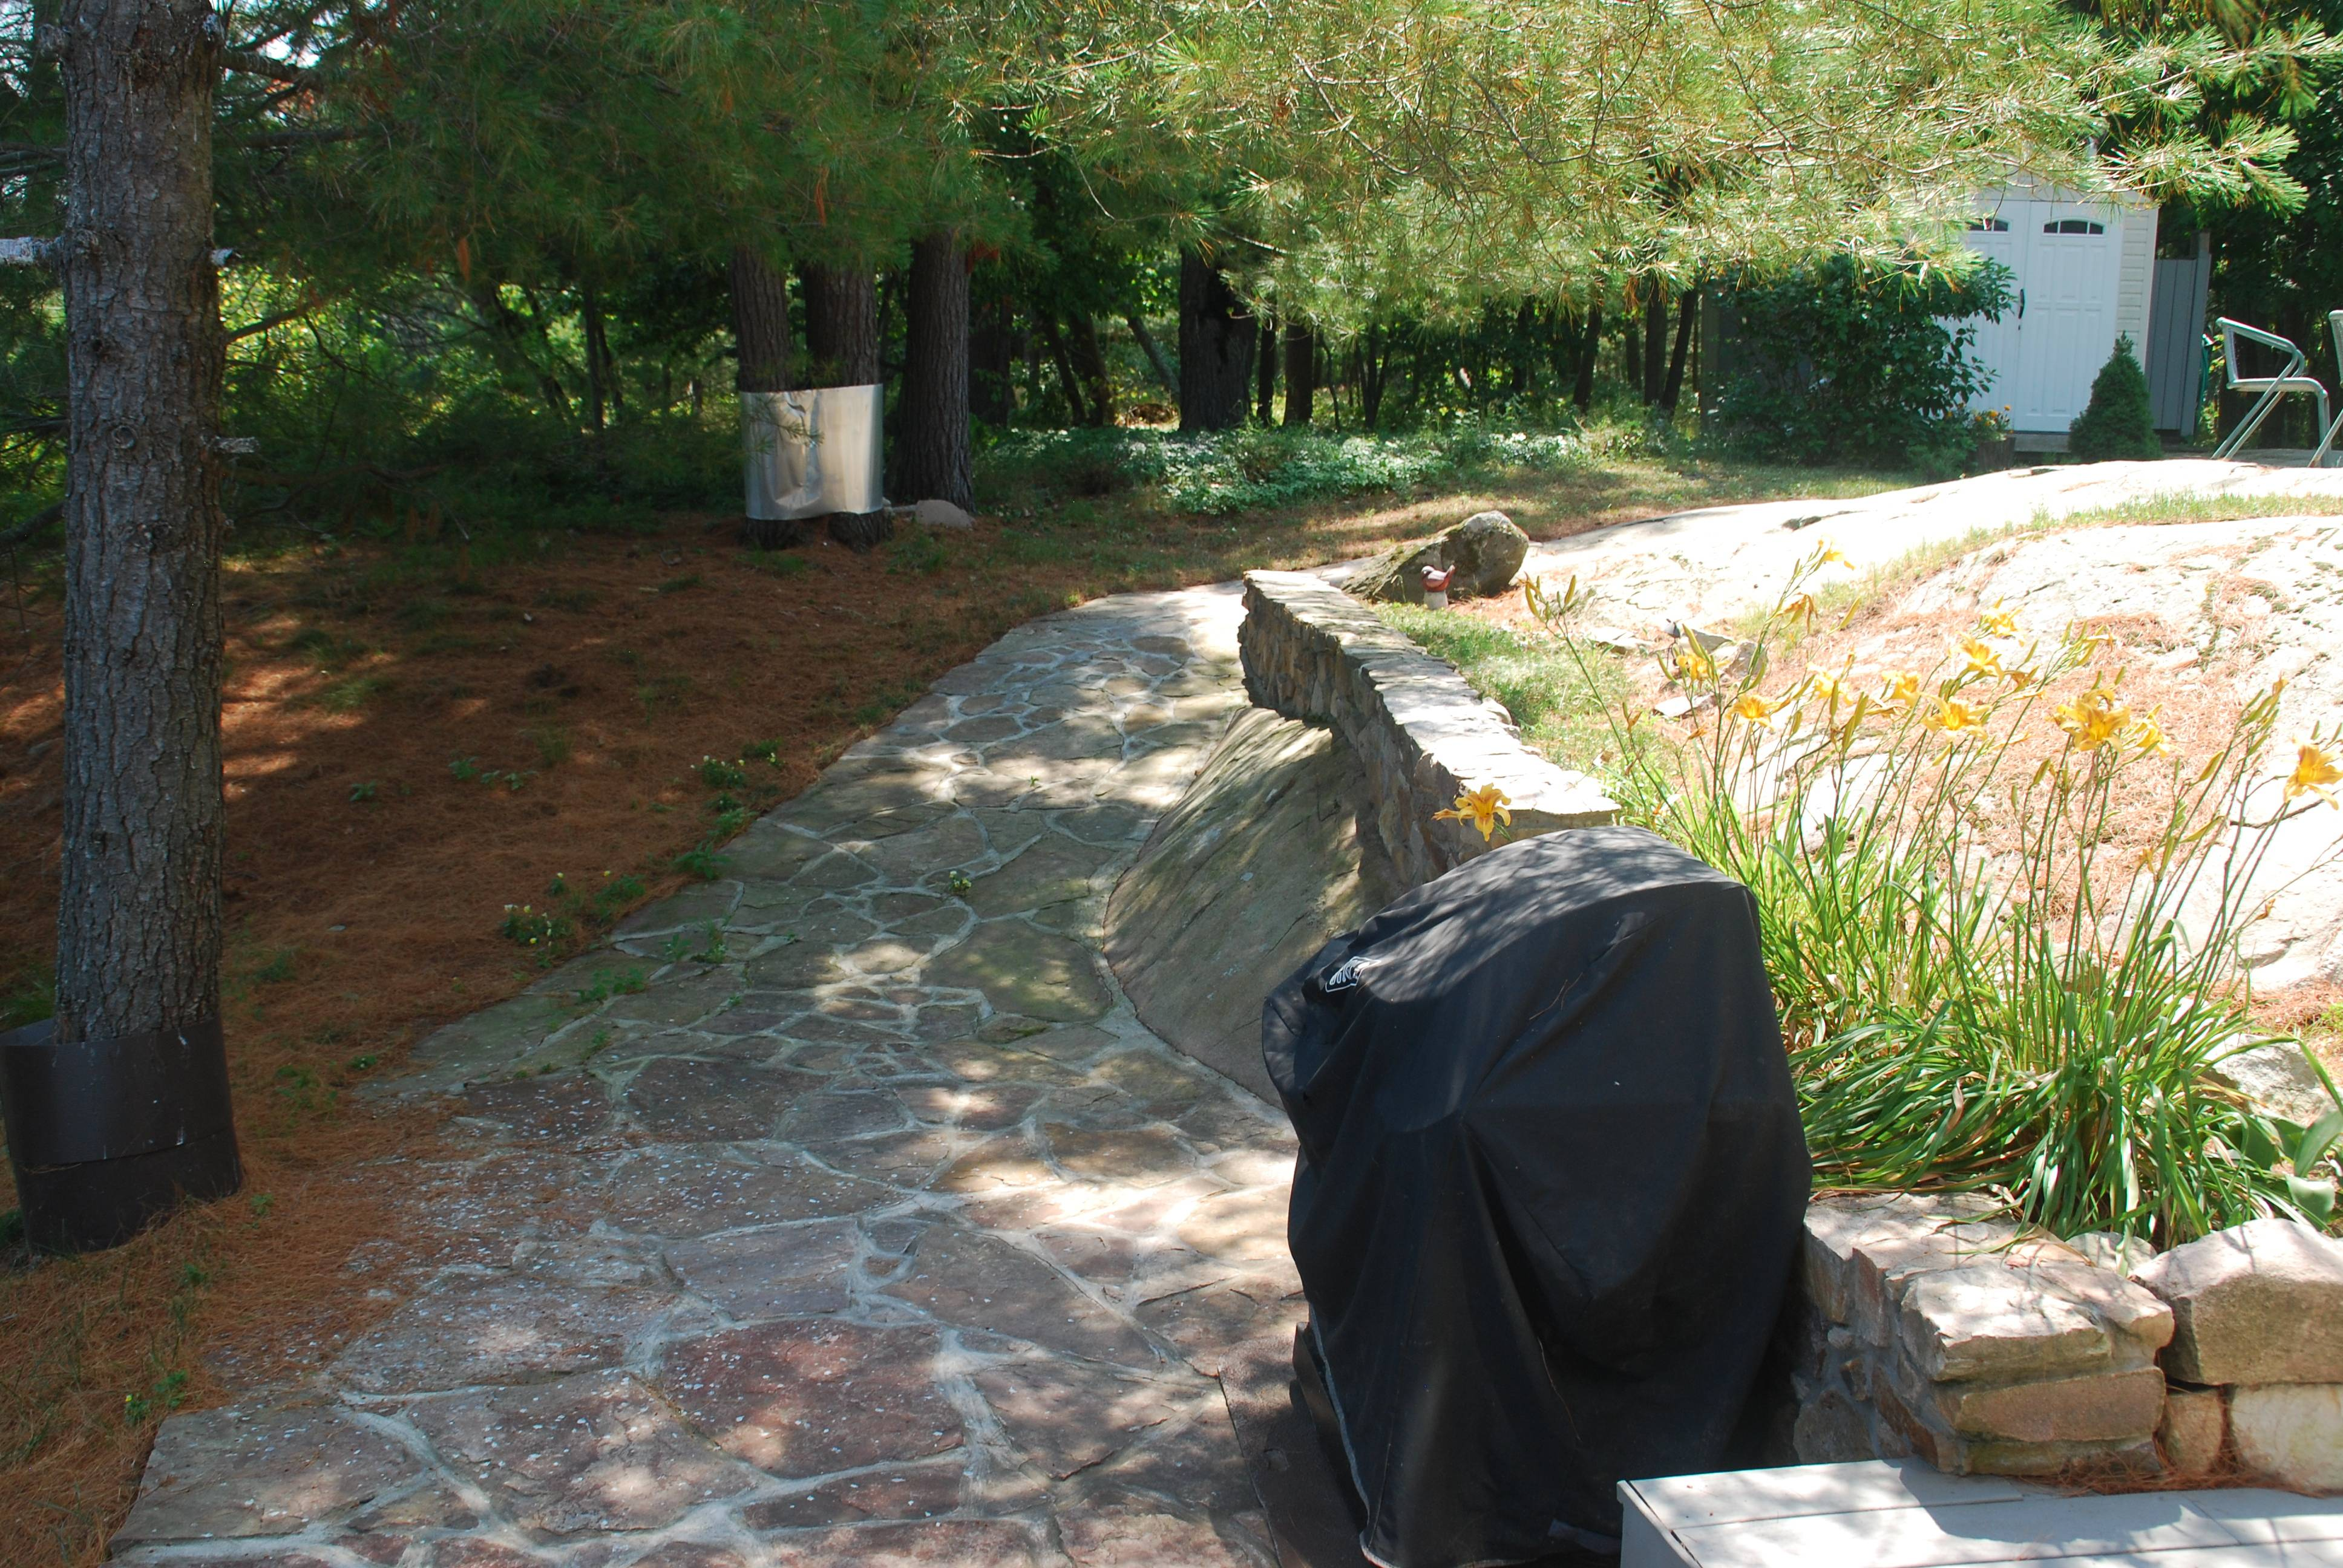 Stone path leading up to fire pit and outdoor shower